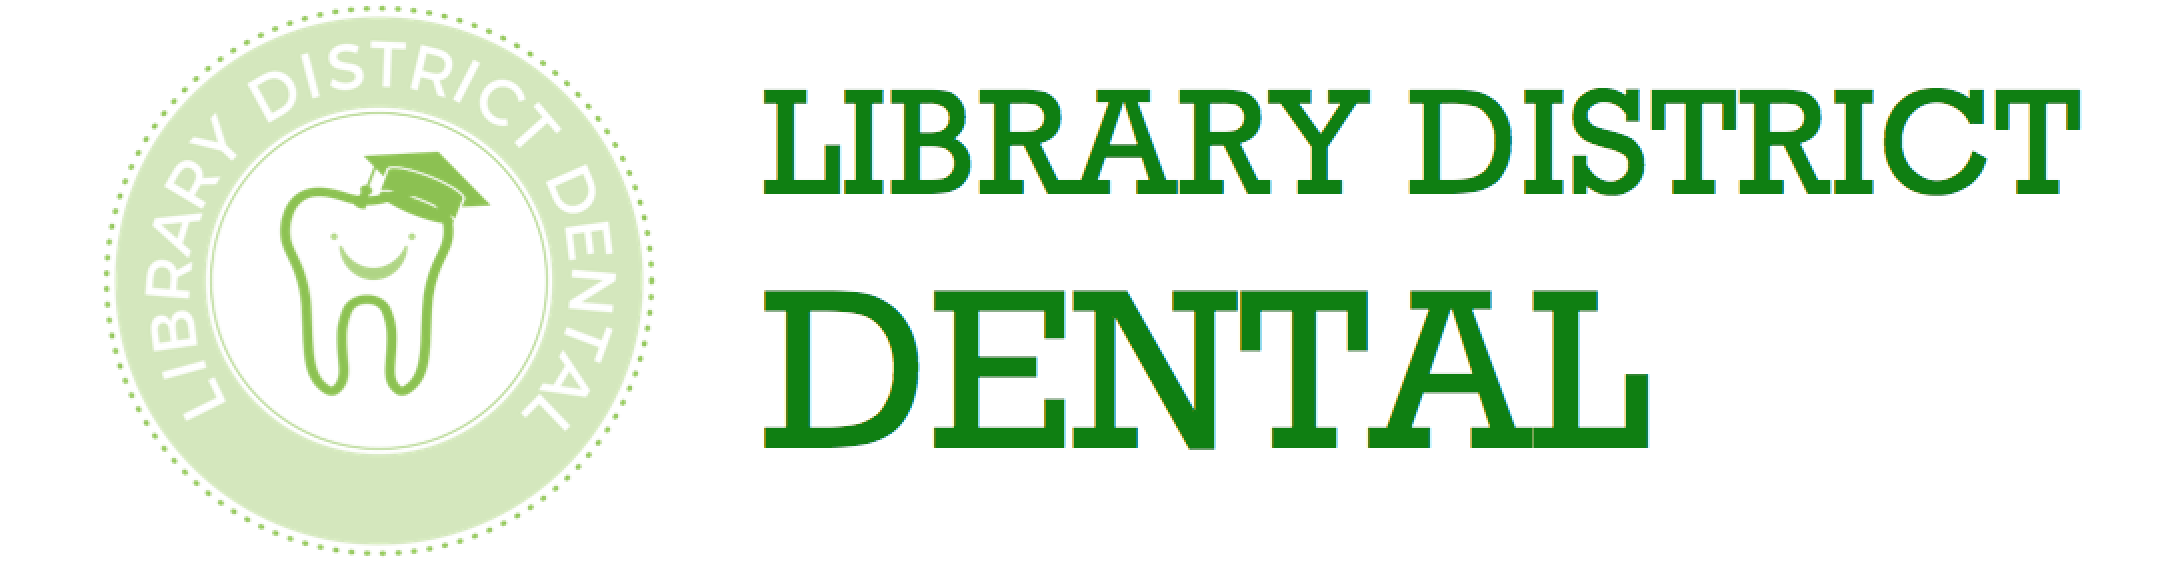 Library District Dental